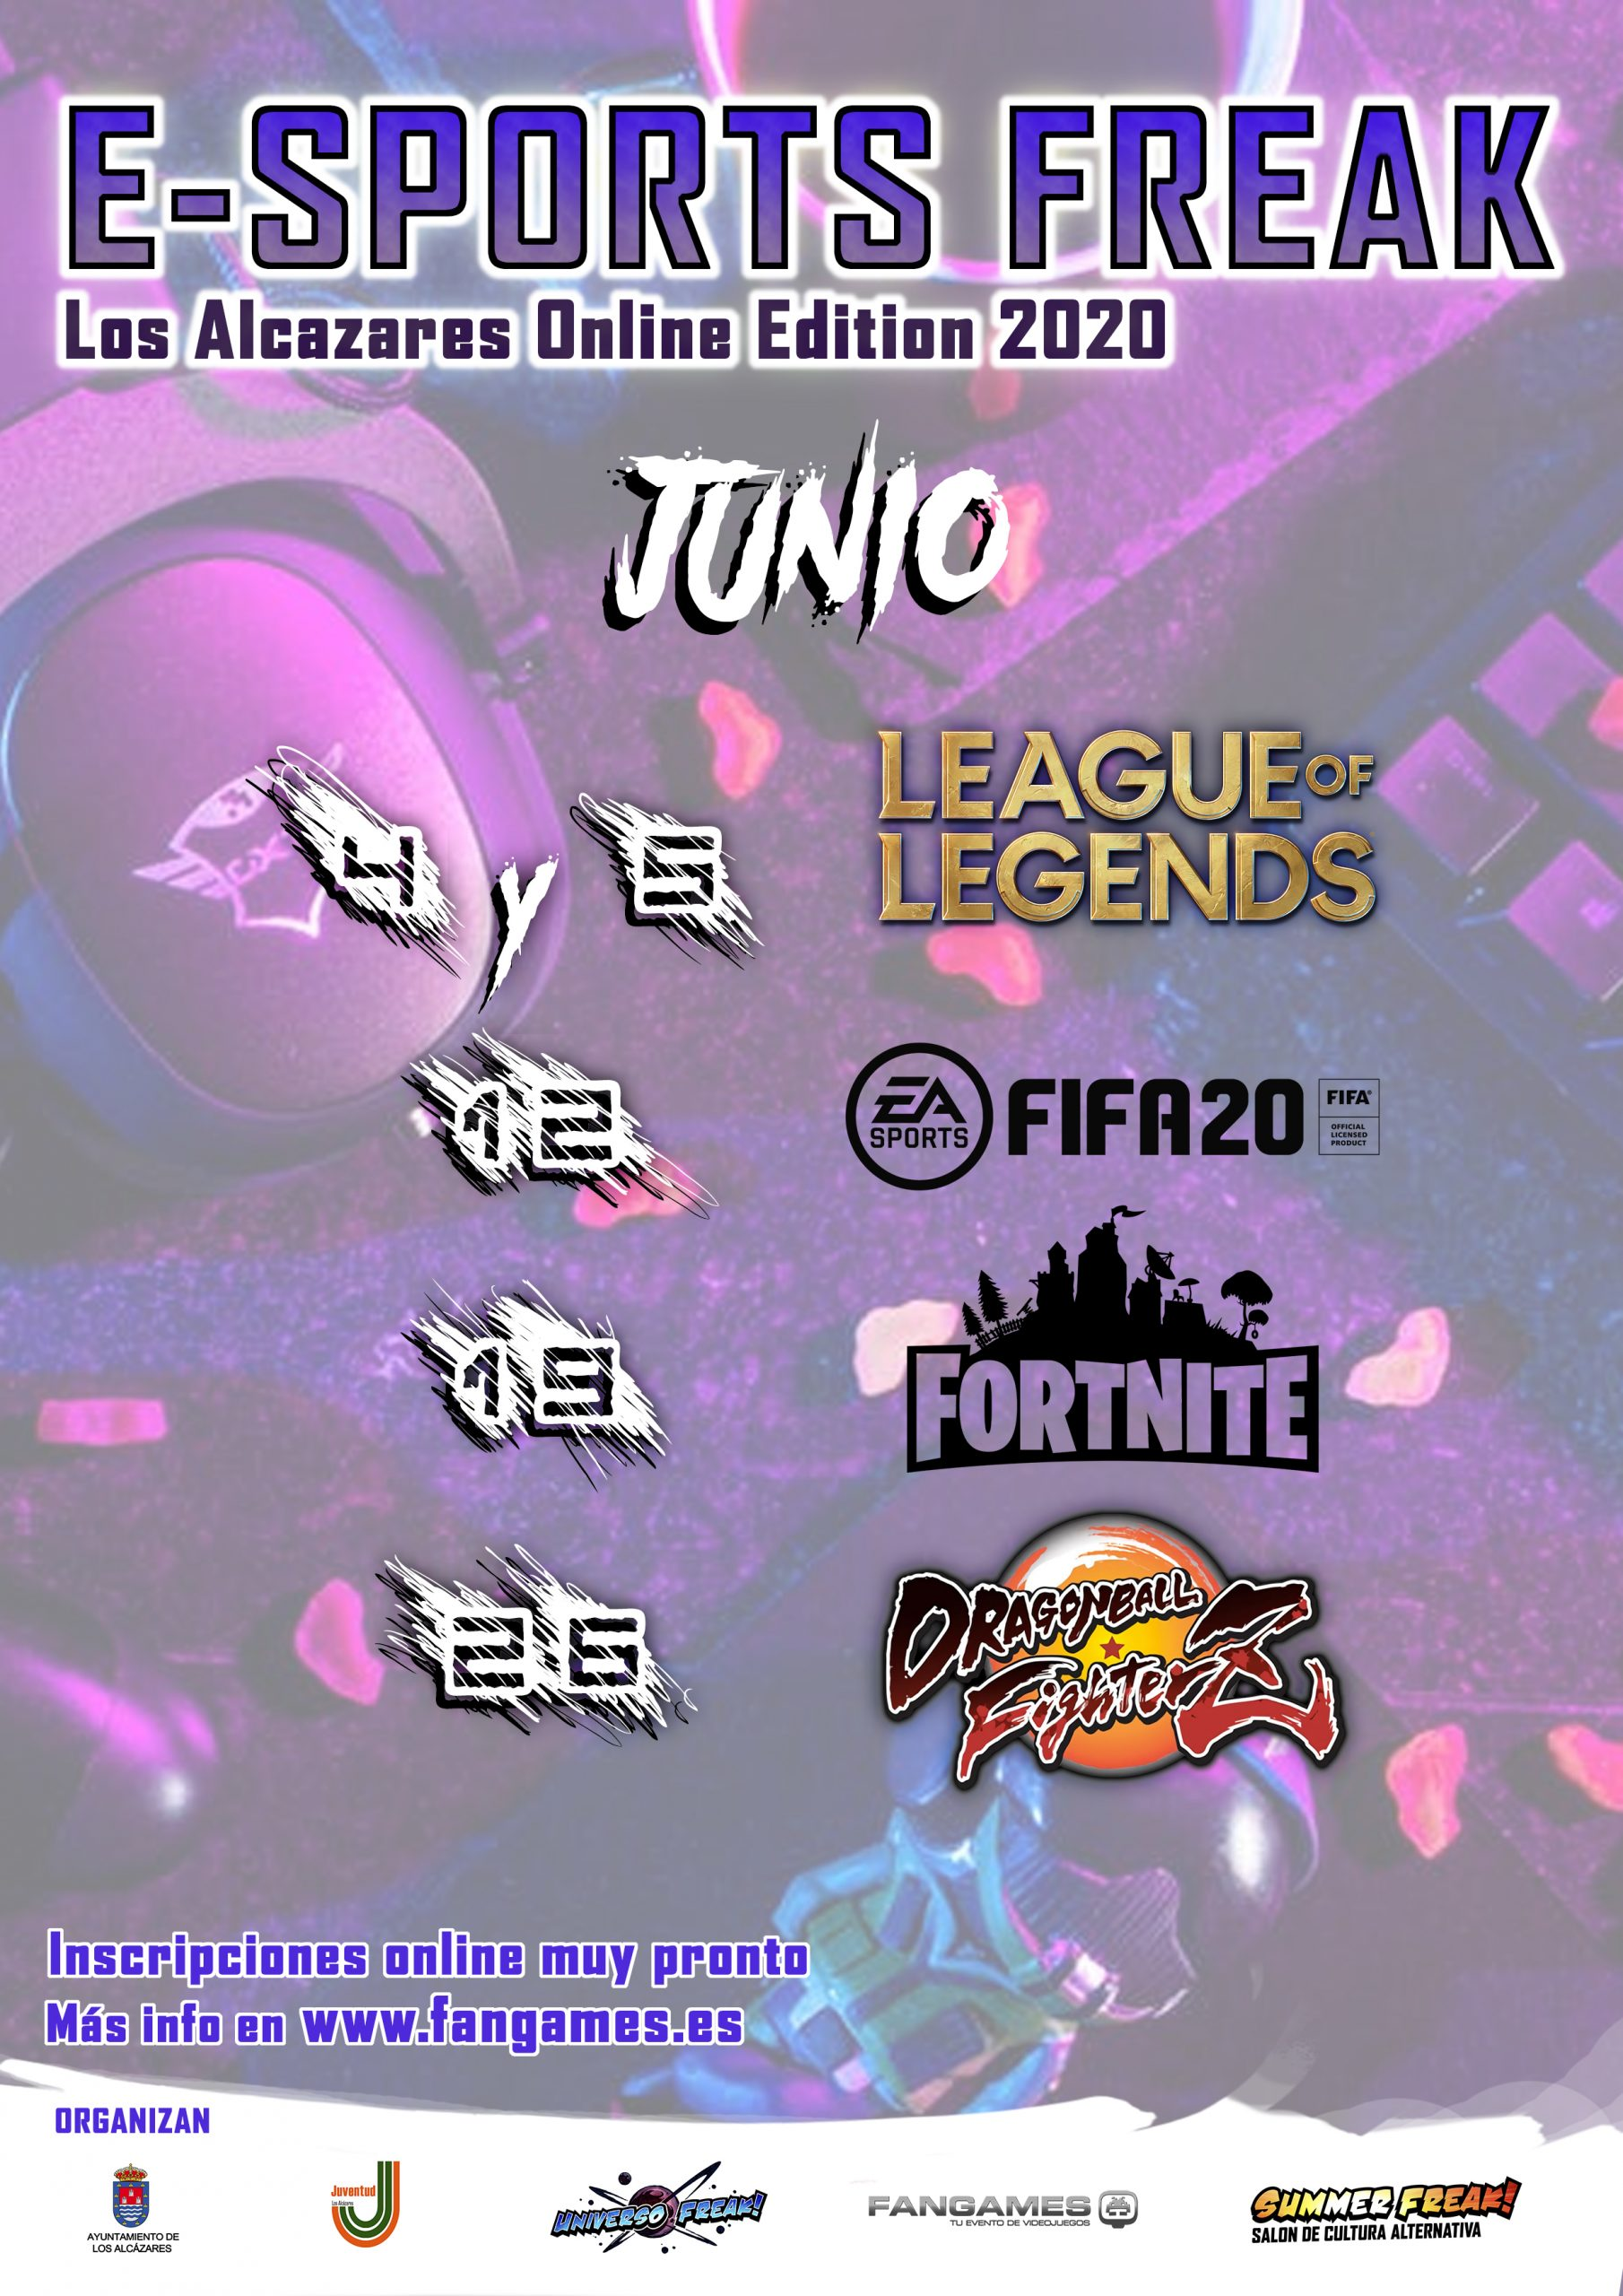 CARTEL E-SPORTS FREAK 2020 LOS ALCAZARES